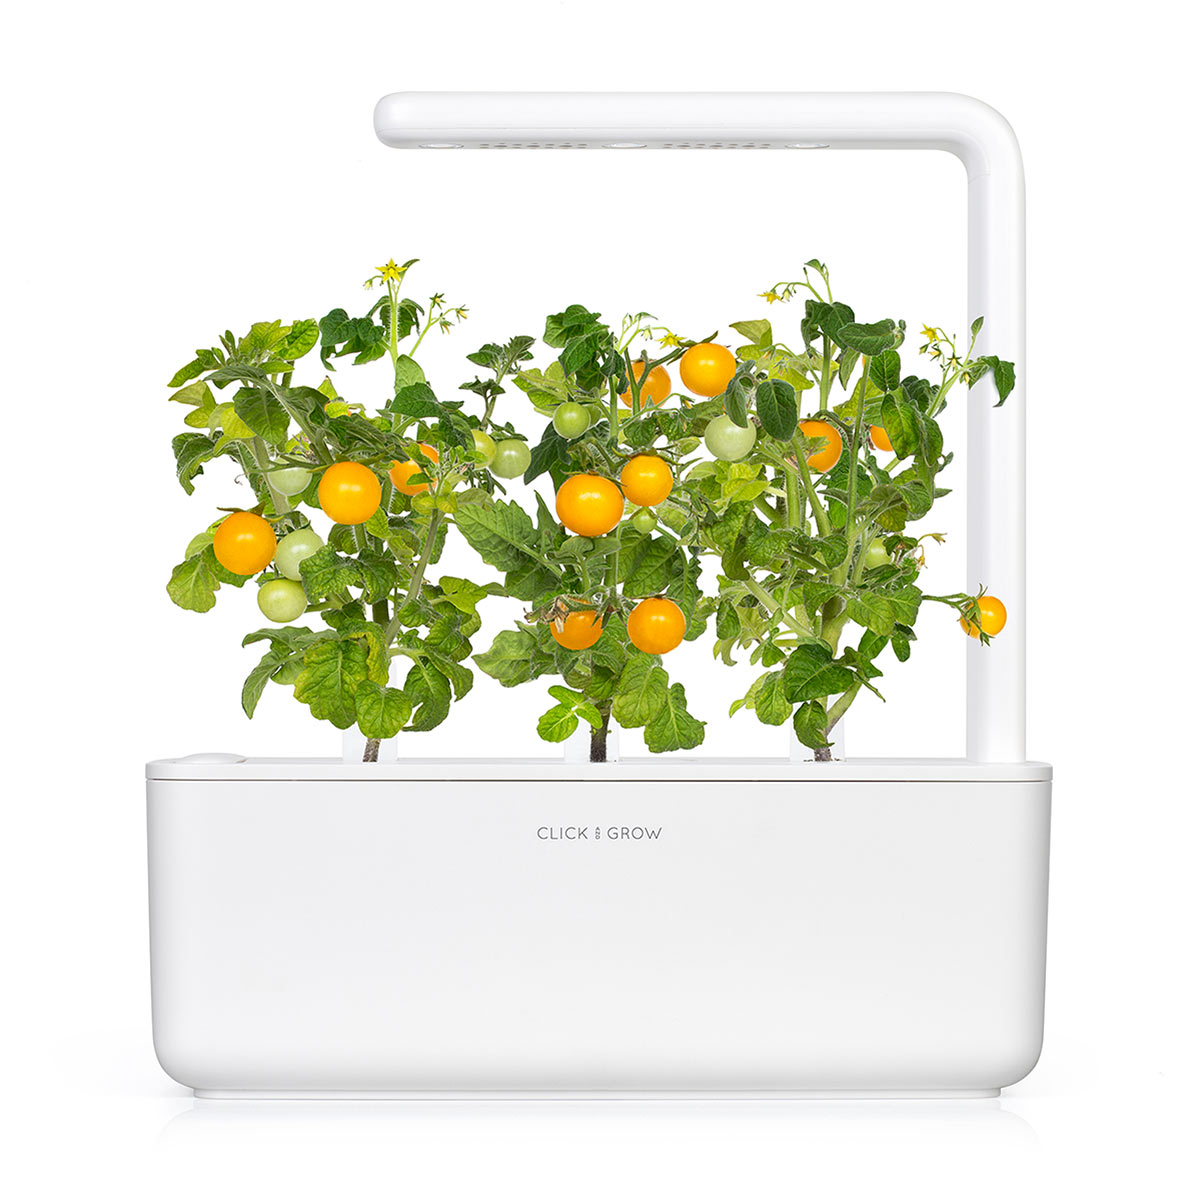 Mini Tomato - Grow superfood at home in an Indoor Herb Garden.